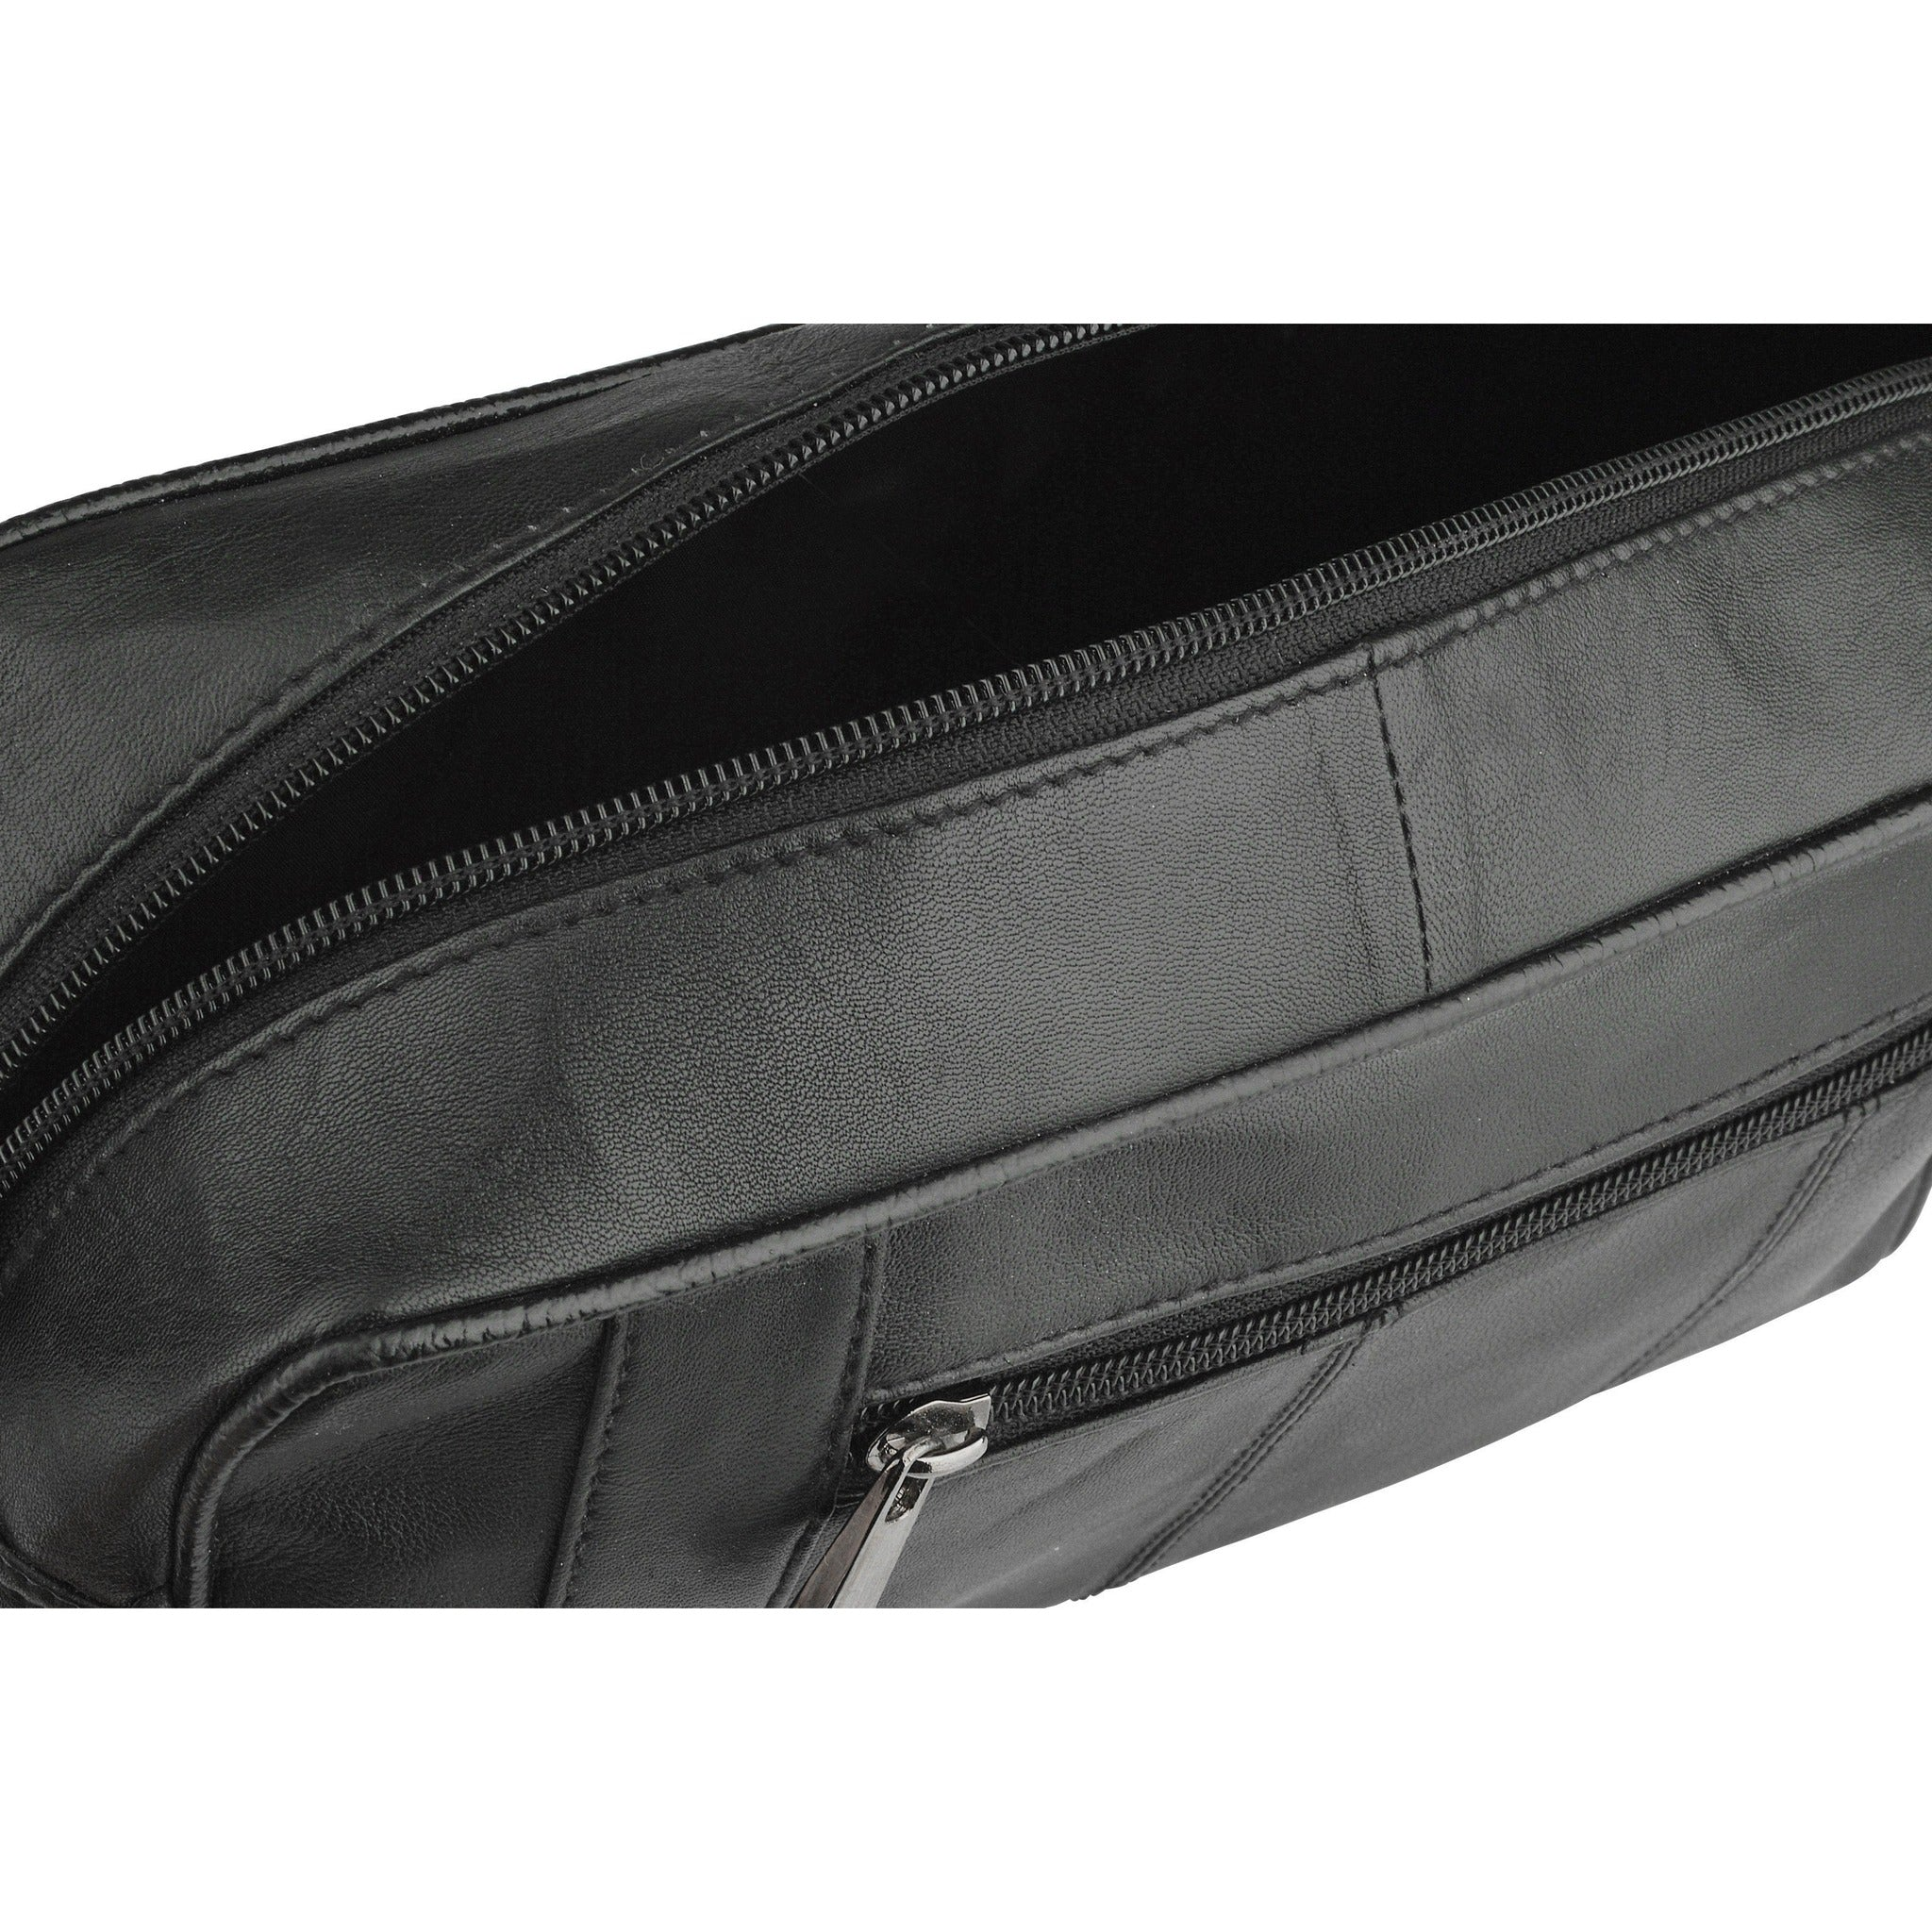 55e2274c316f Woodland Leather Black Leather Essential Wash Bag-Equestrian Co. Woodland  Leather Black Leather Essential Wash Bag-Equestrian Co.